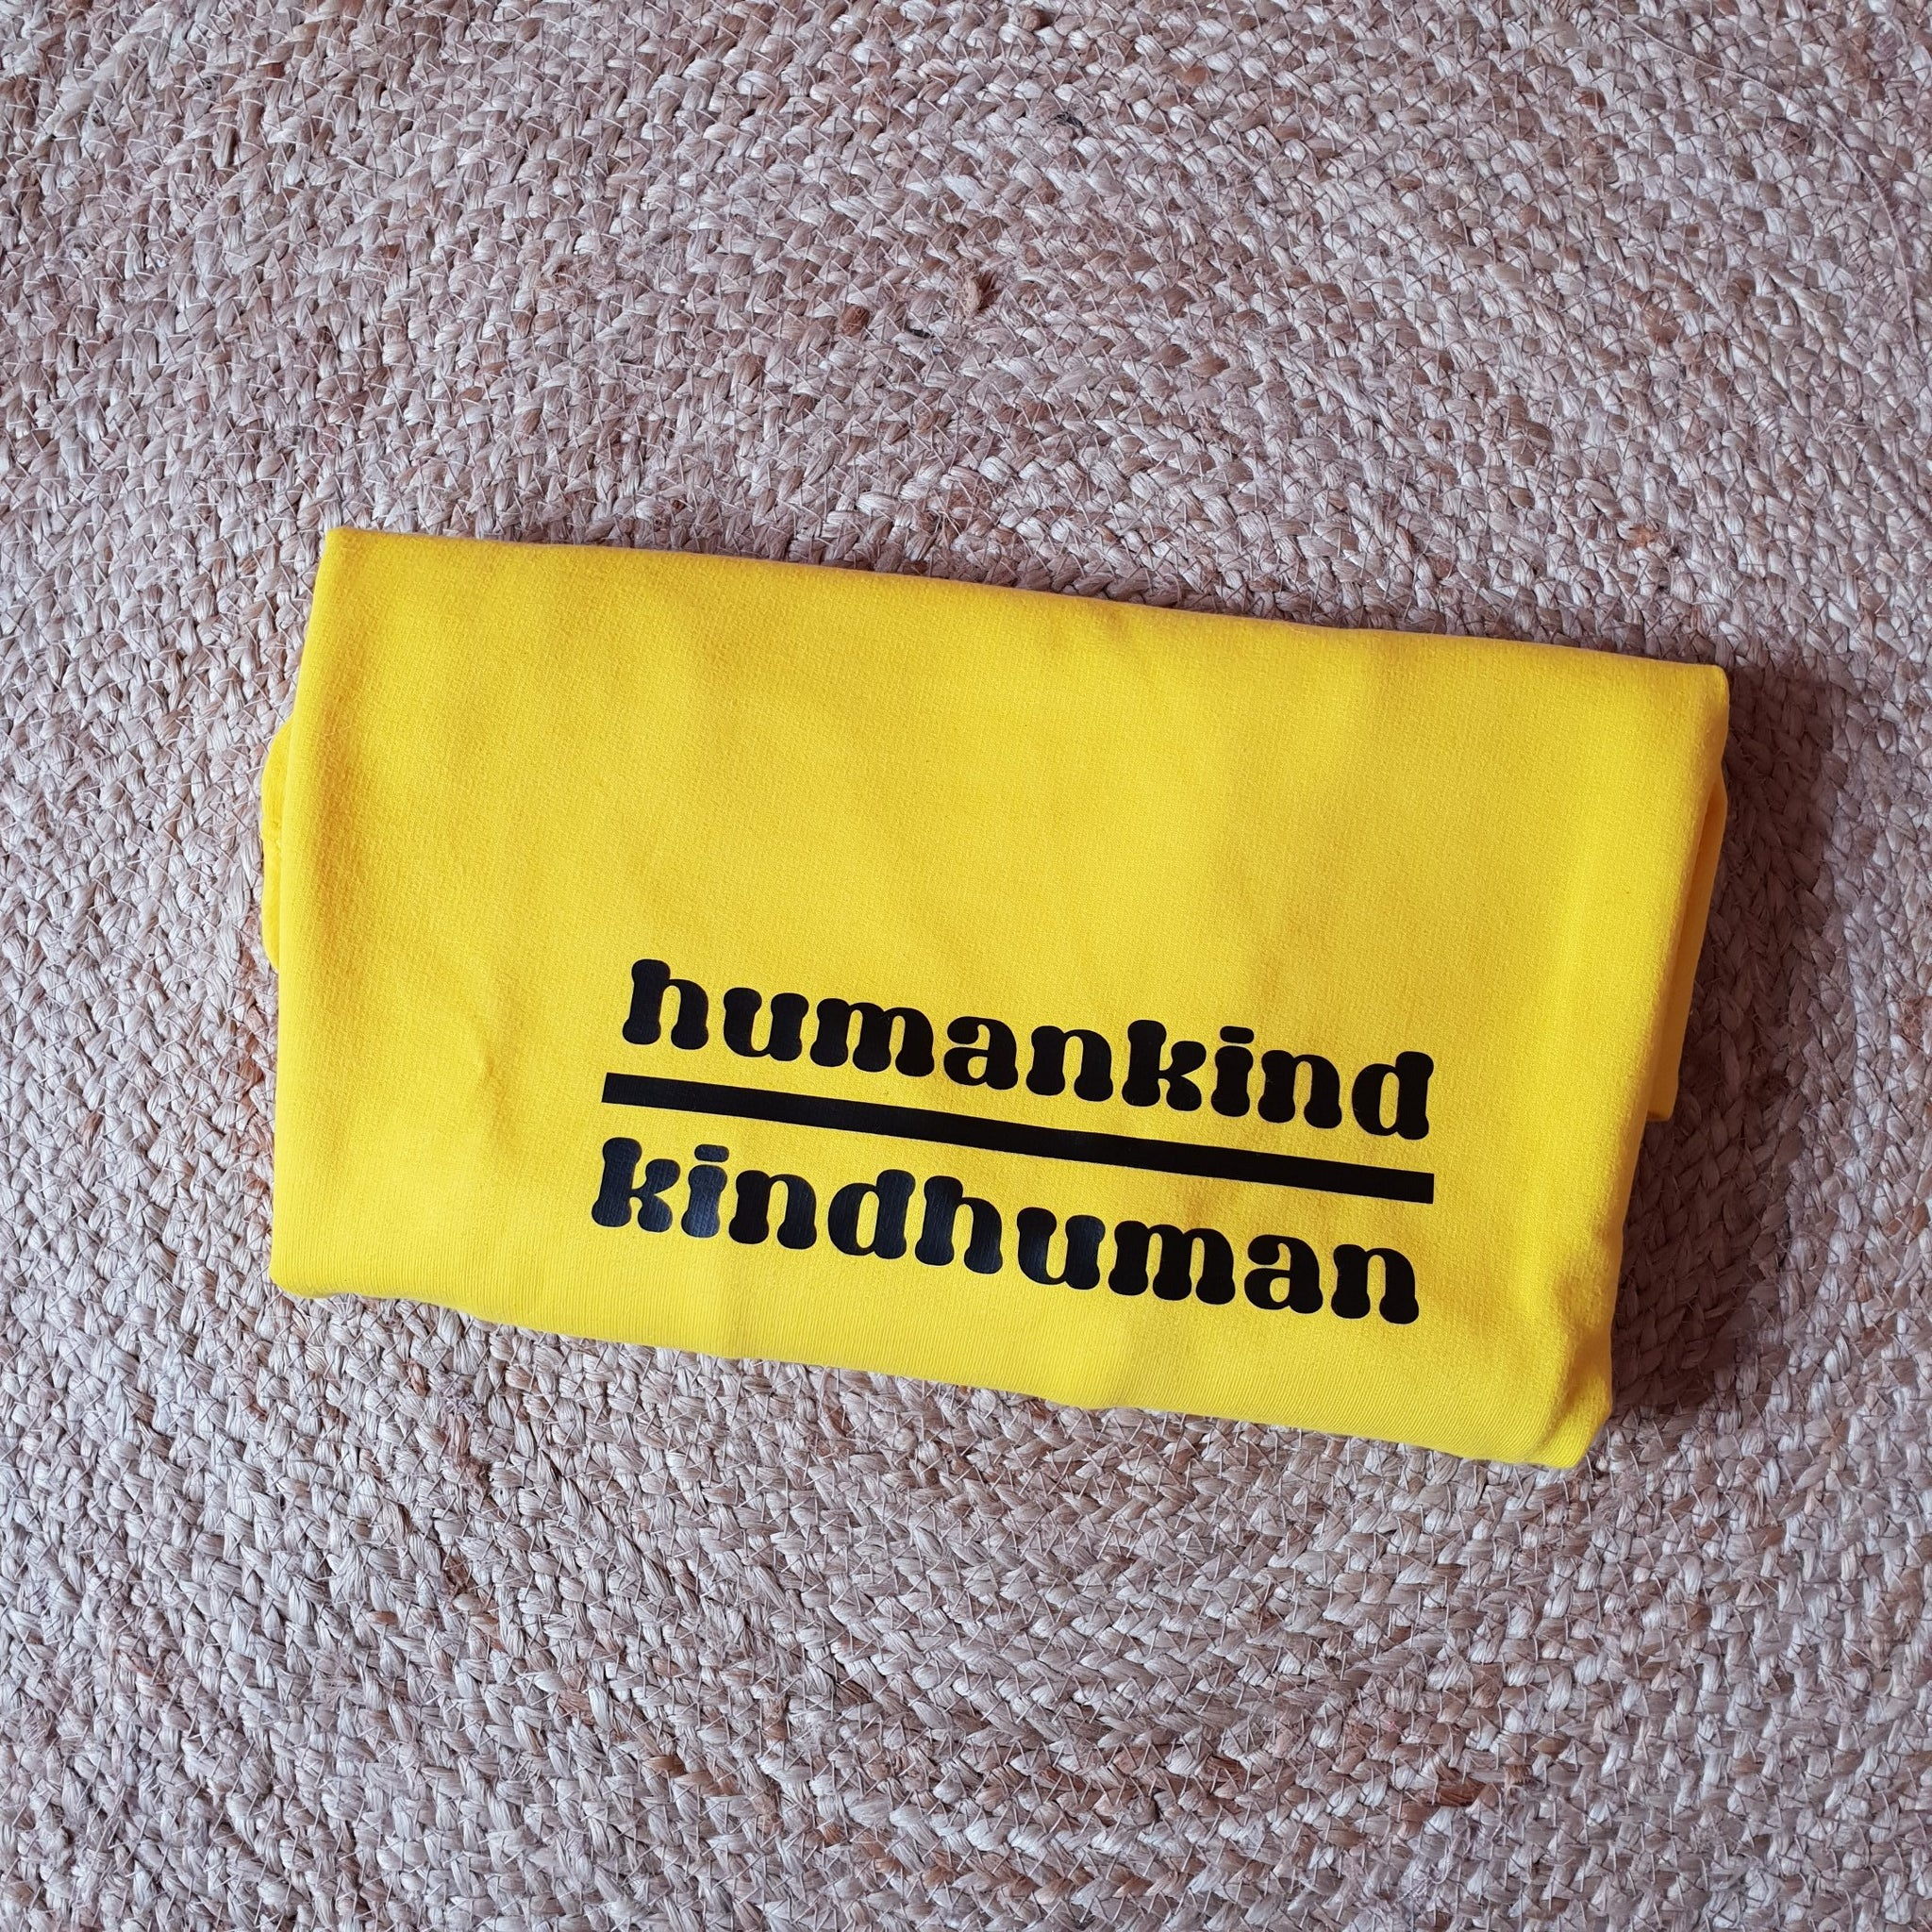 Humankind Kindhuman Jumper - X Large Yellow